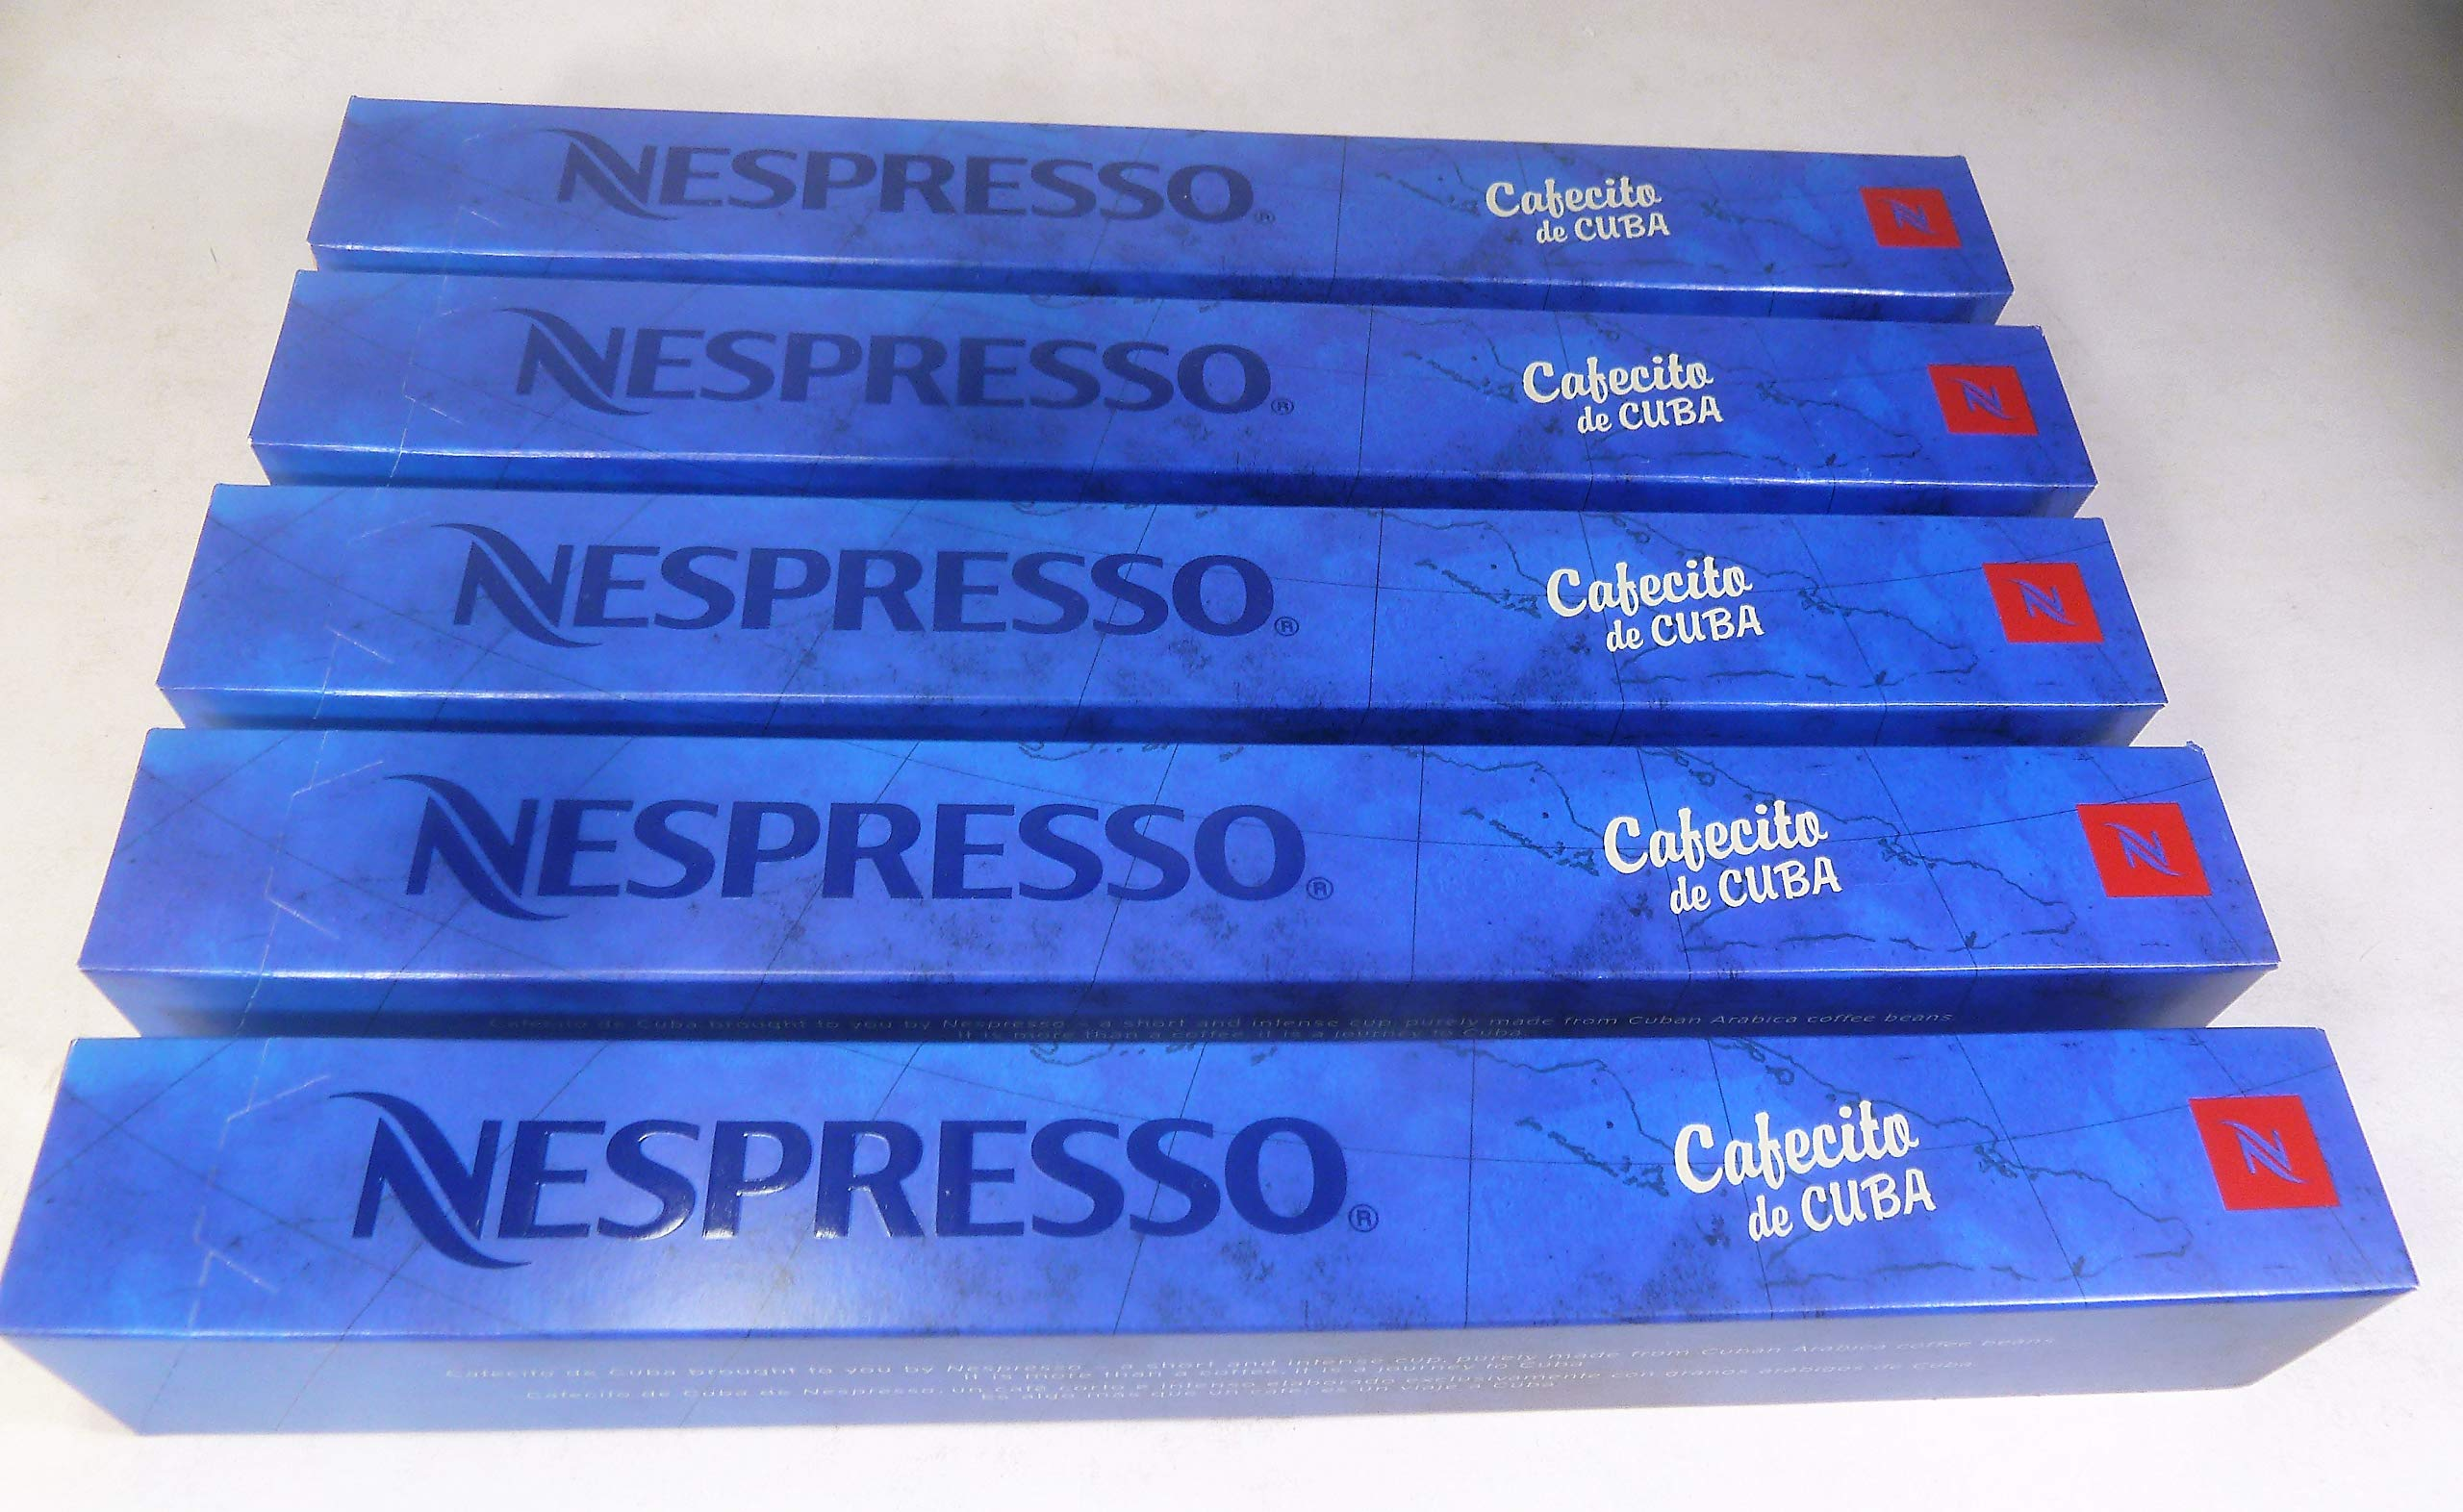 NESPRESSO (FOR COLLECTORS - after best before date) CAFECITO DE Cuba 5 Sleeve (50 Capsules) Limited Edition Coffee